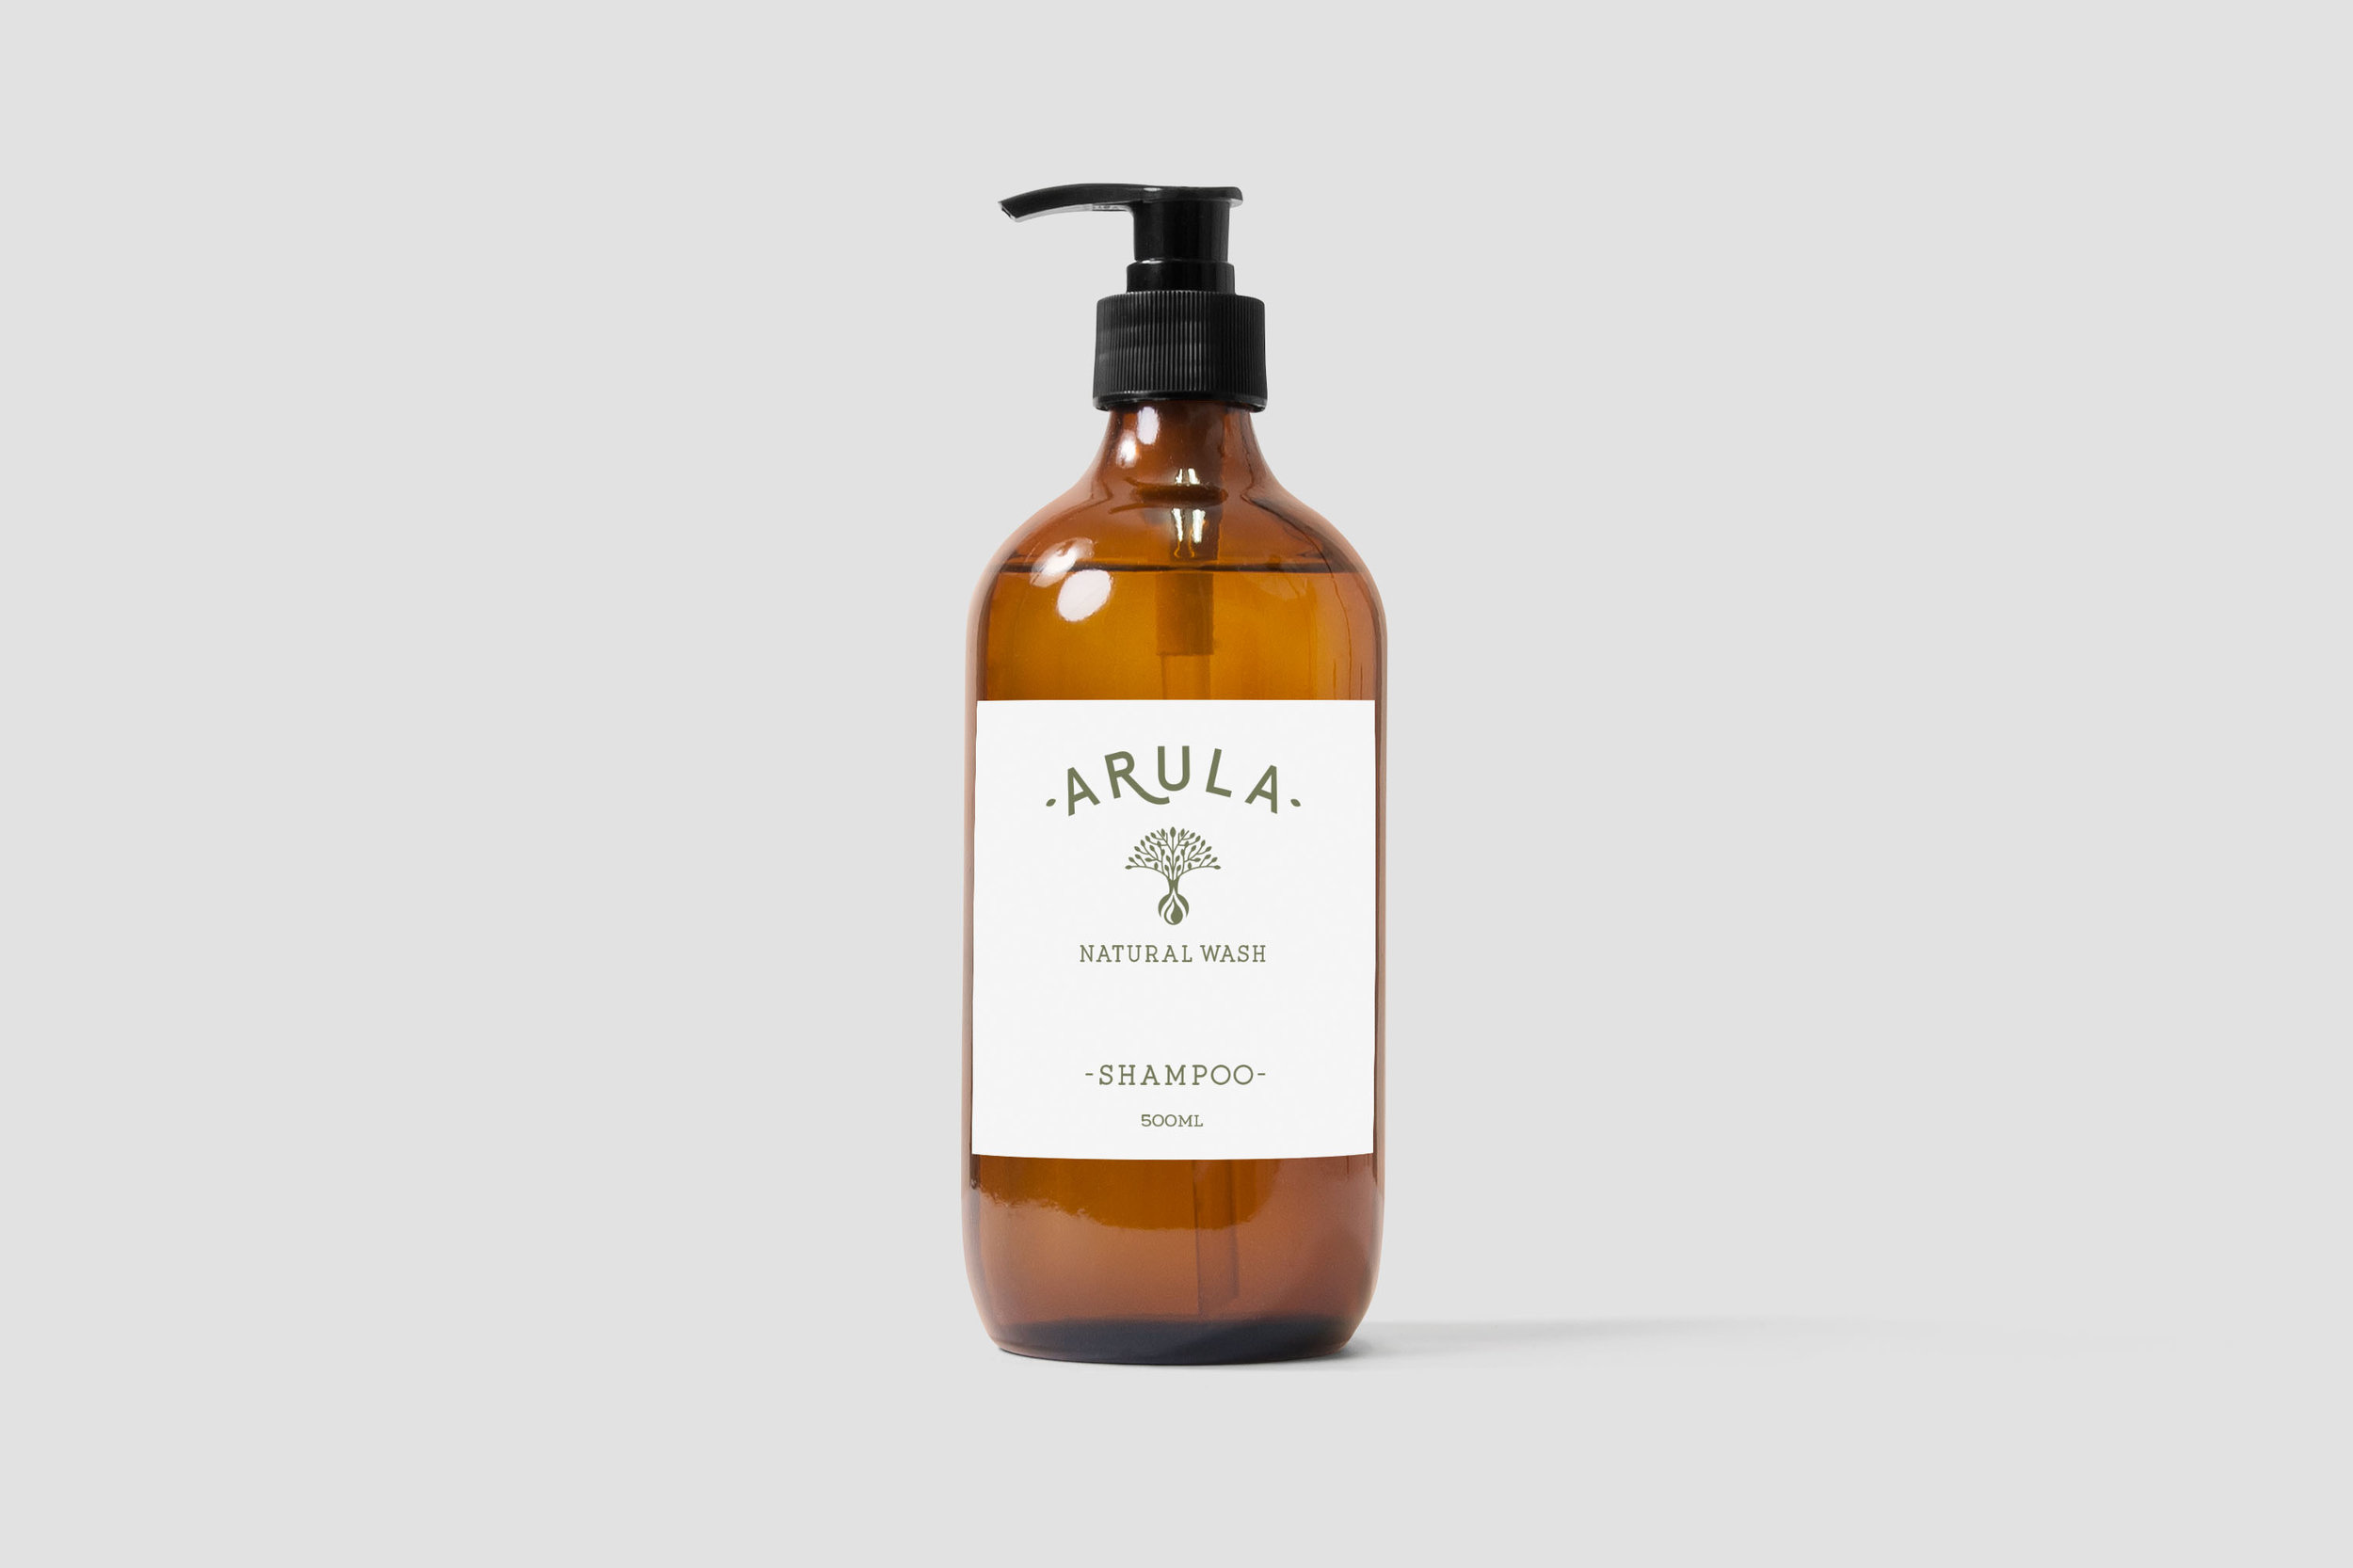 Arula bottle mcockup 2_.jpg